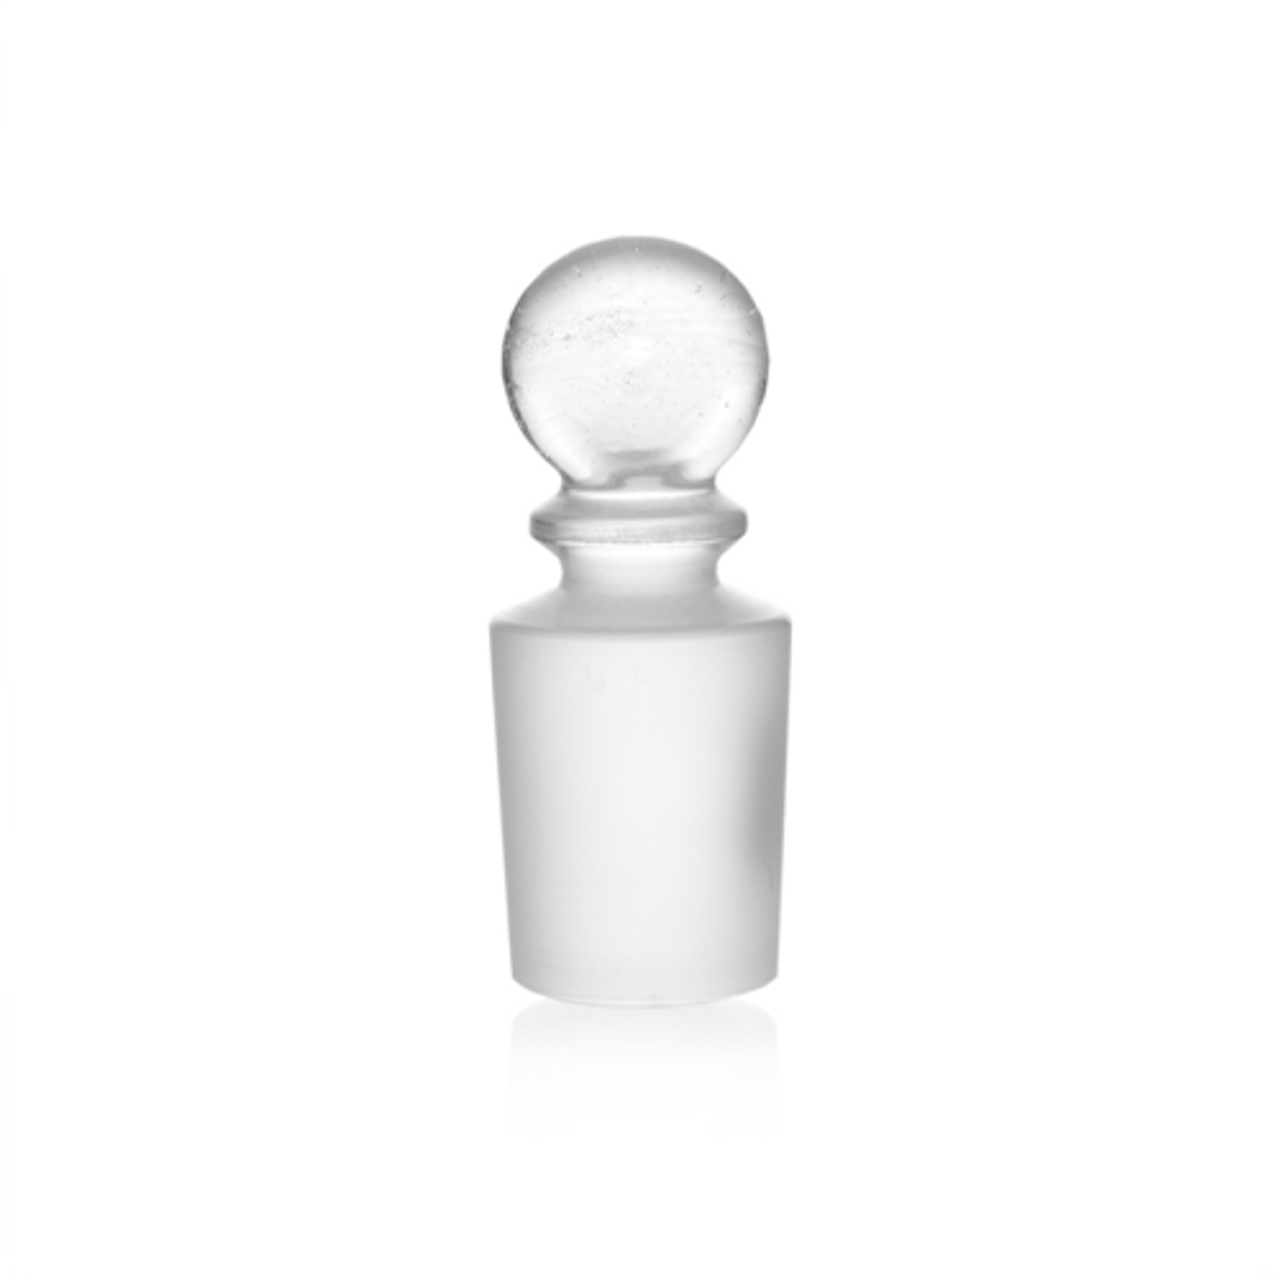 Grav Labs 2' Plug Adapter 19mm Joint - Clear (5 pack)